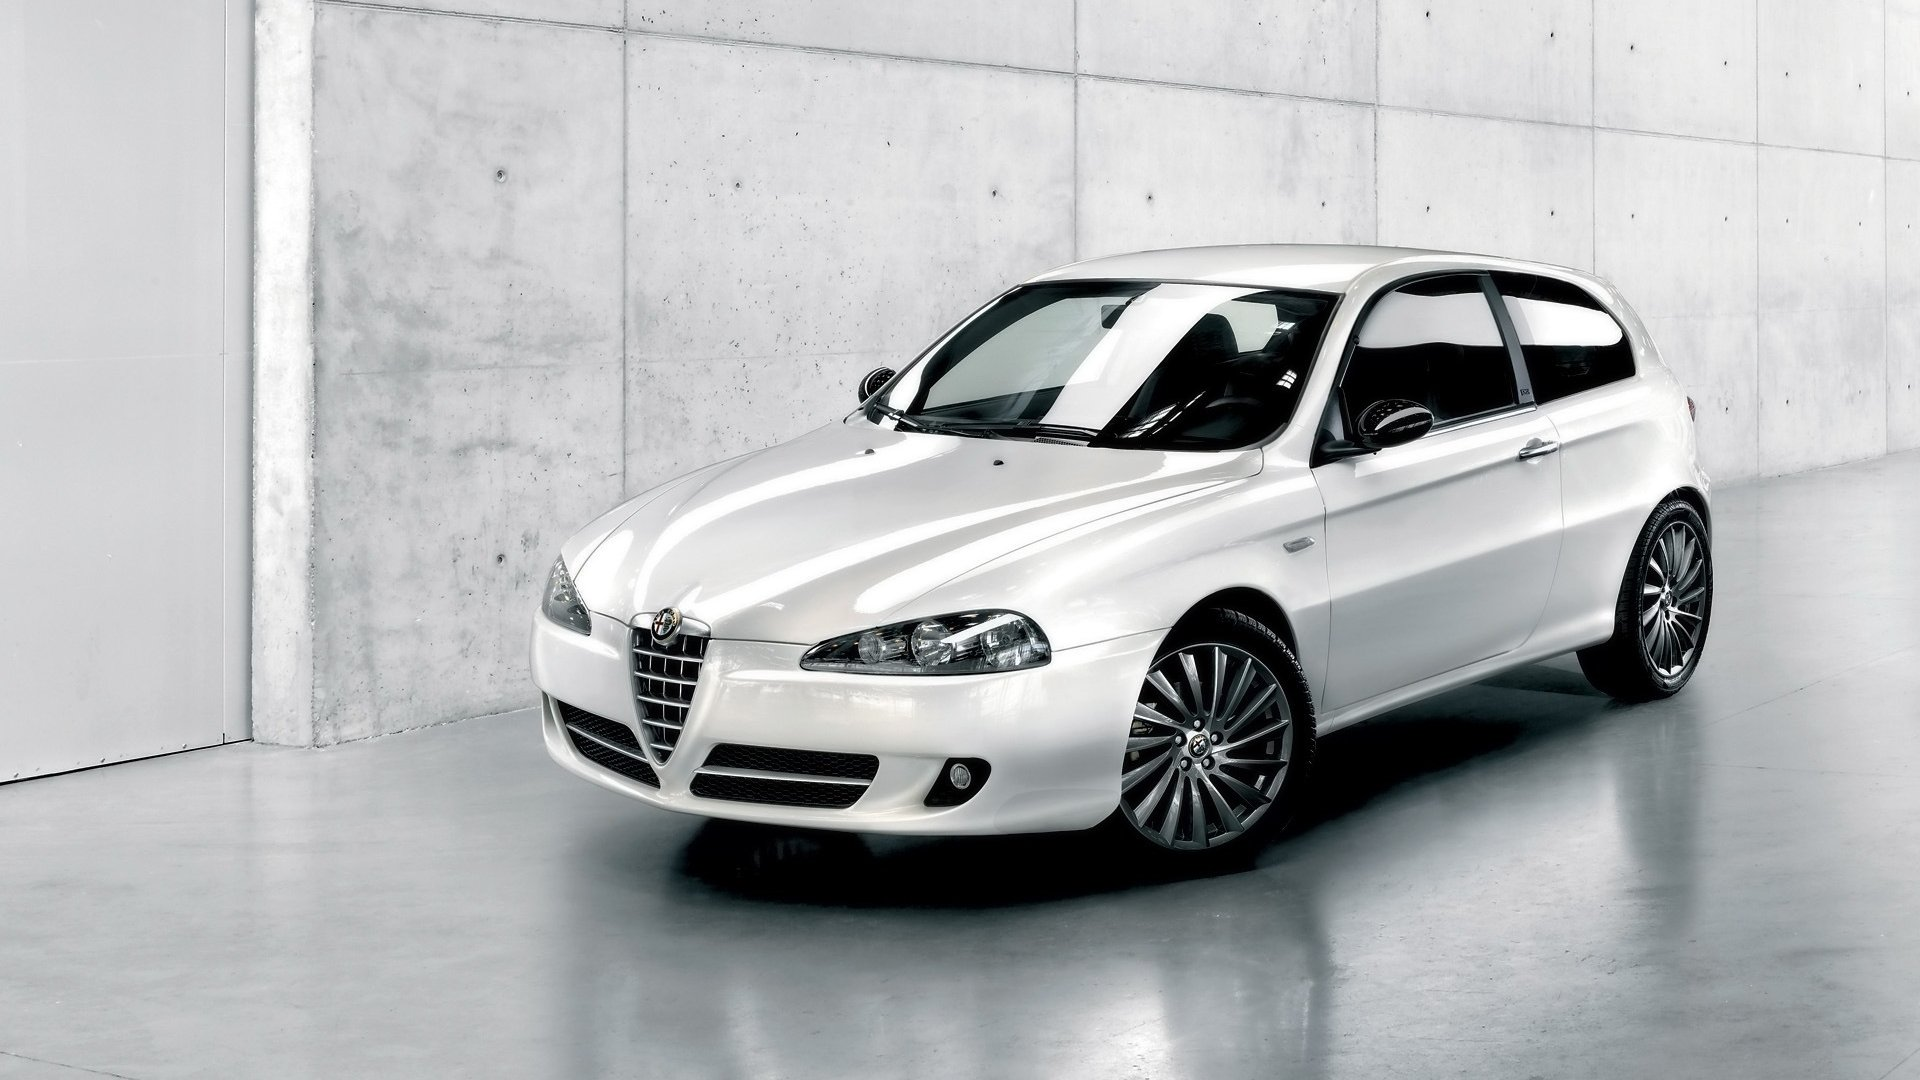 31 Alfa Romeo 147 Hd Wallpapers Background Images Wallpaper Abyss